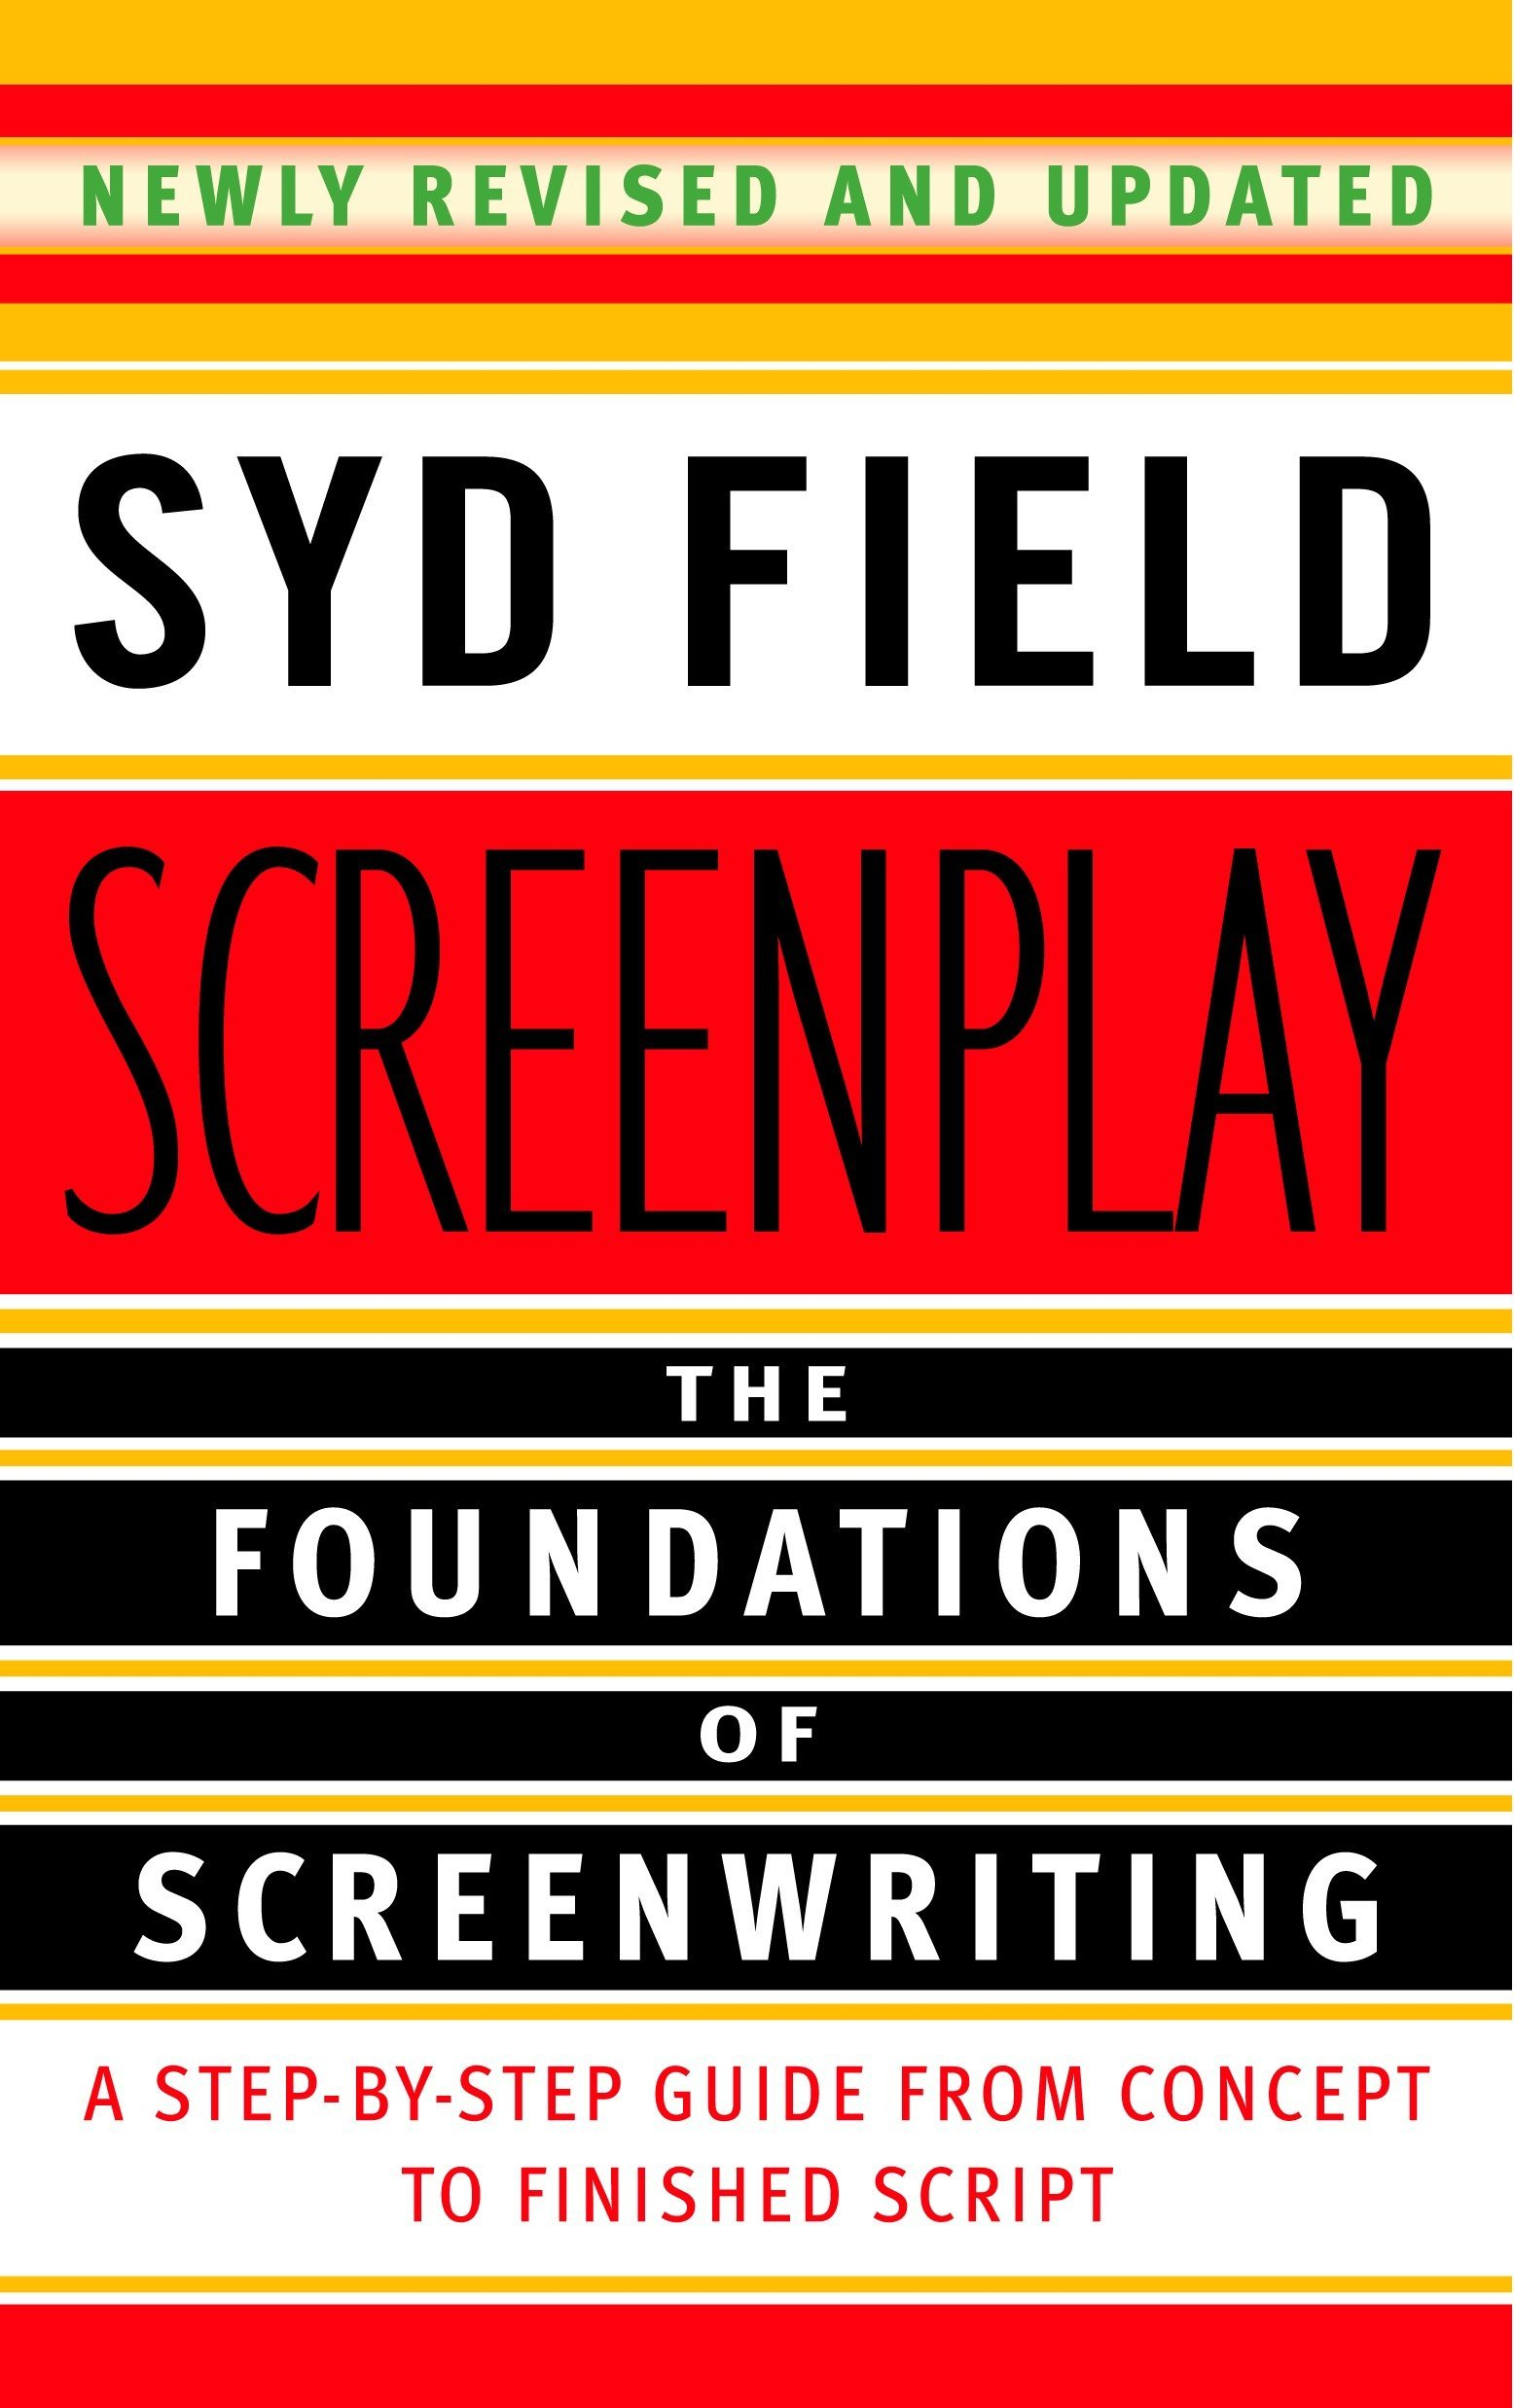 Contrasting Views On Path Screenwriter >> Screenwriting Resources